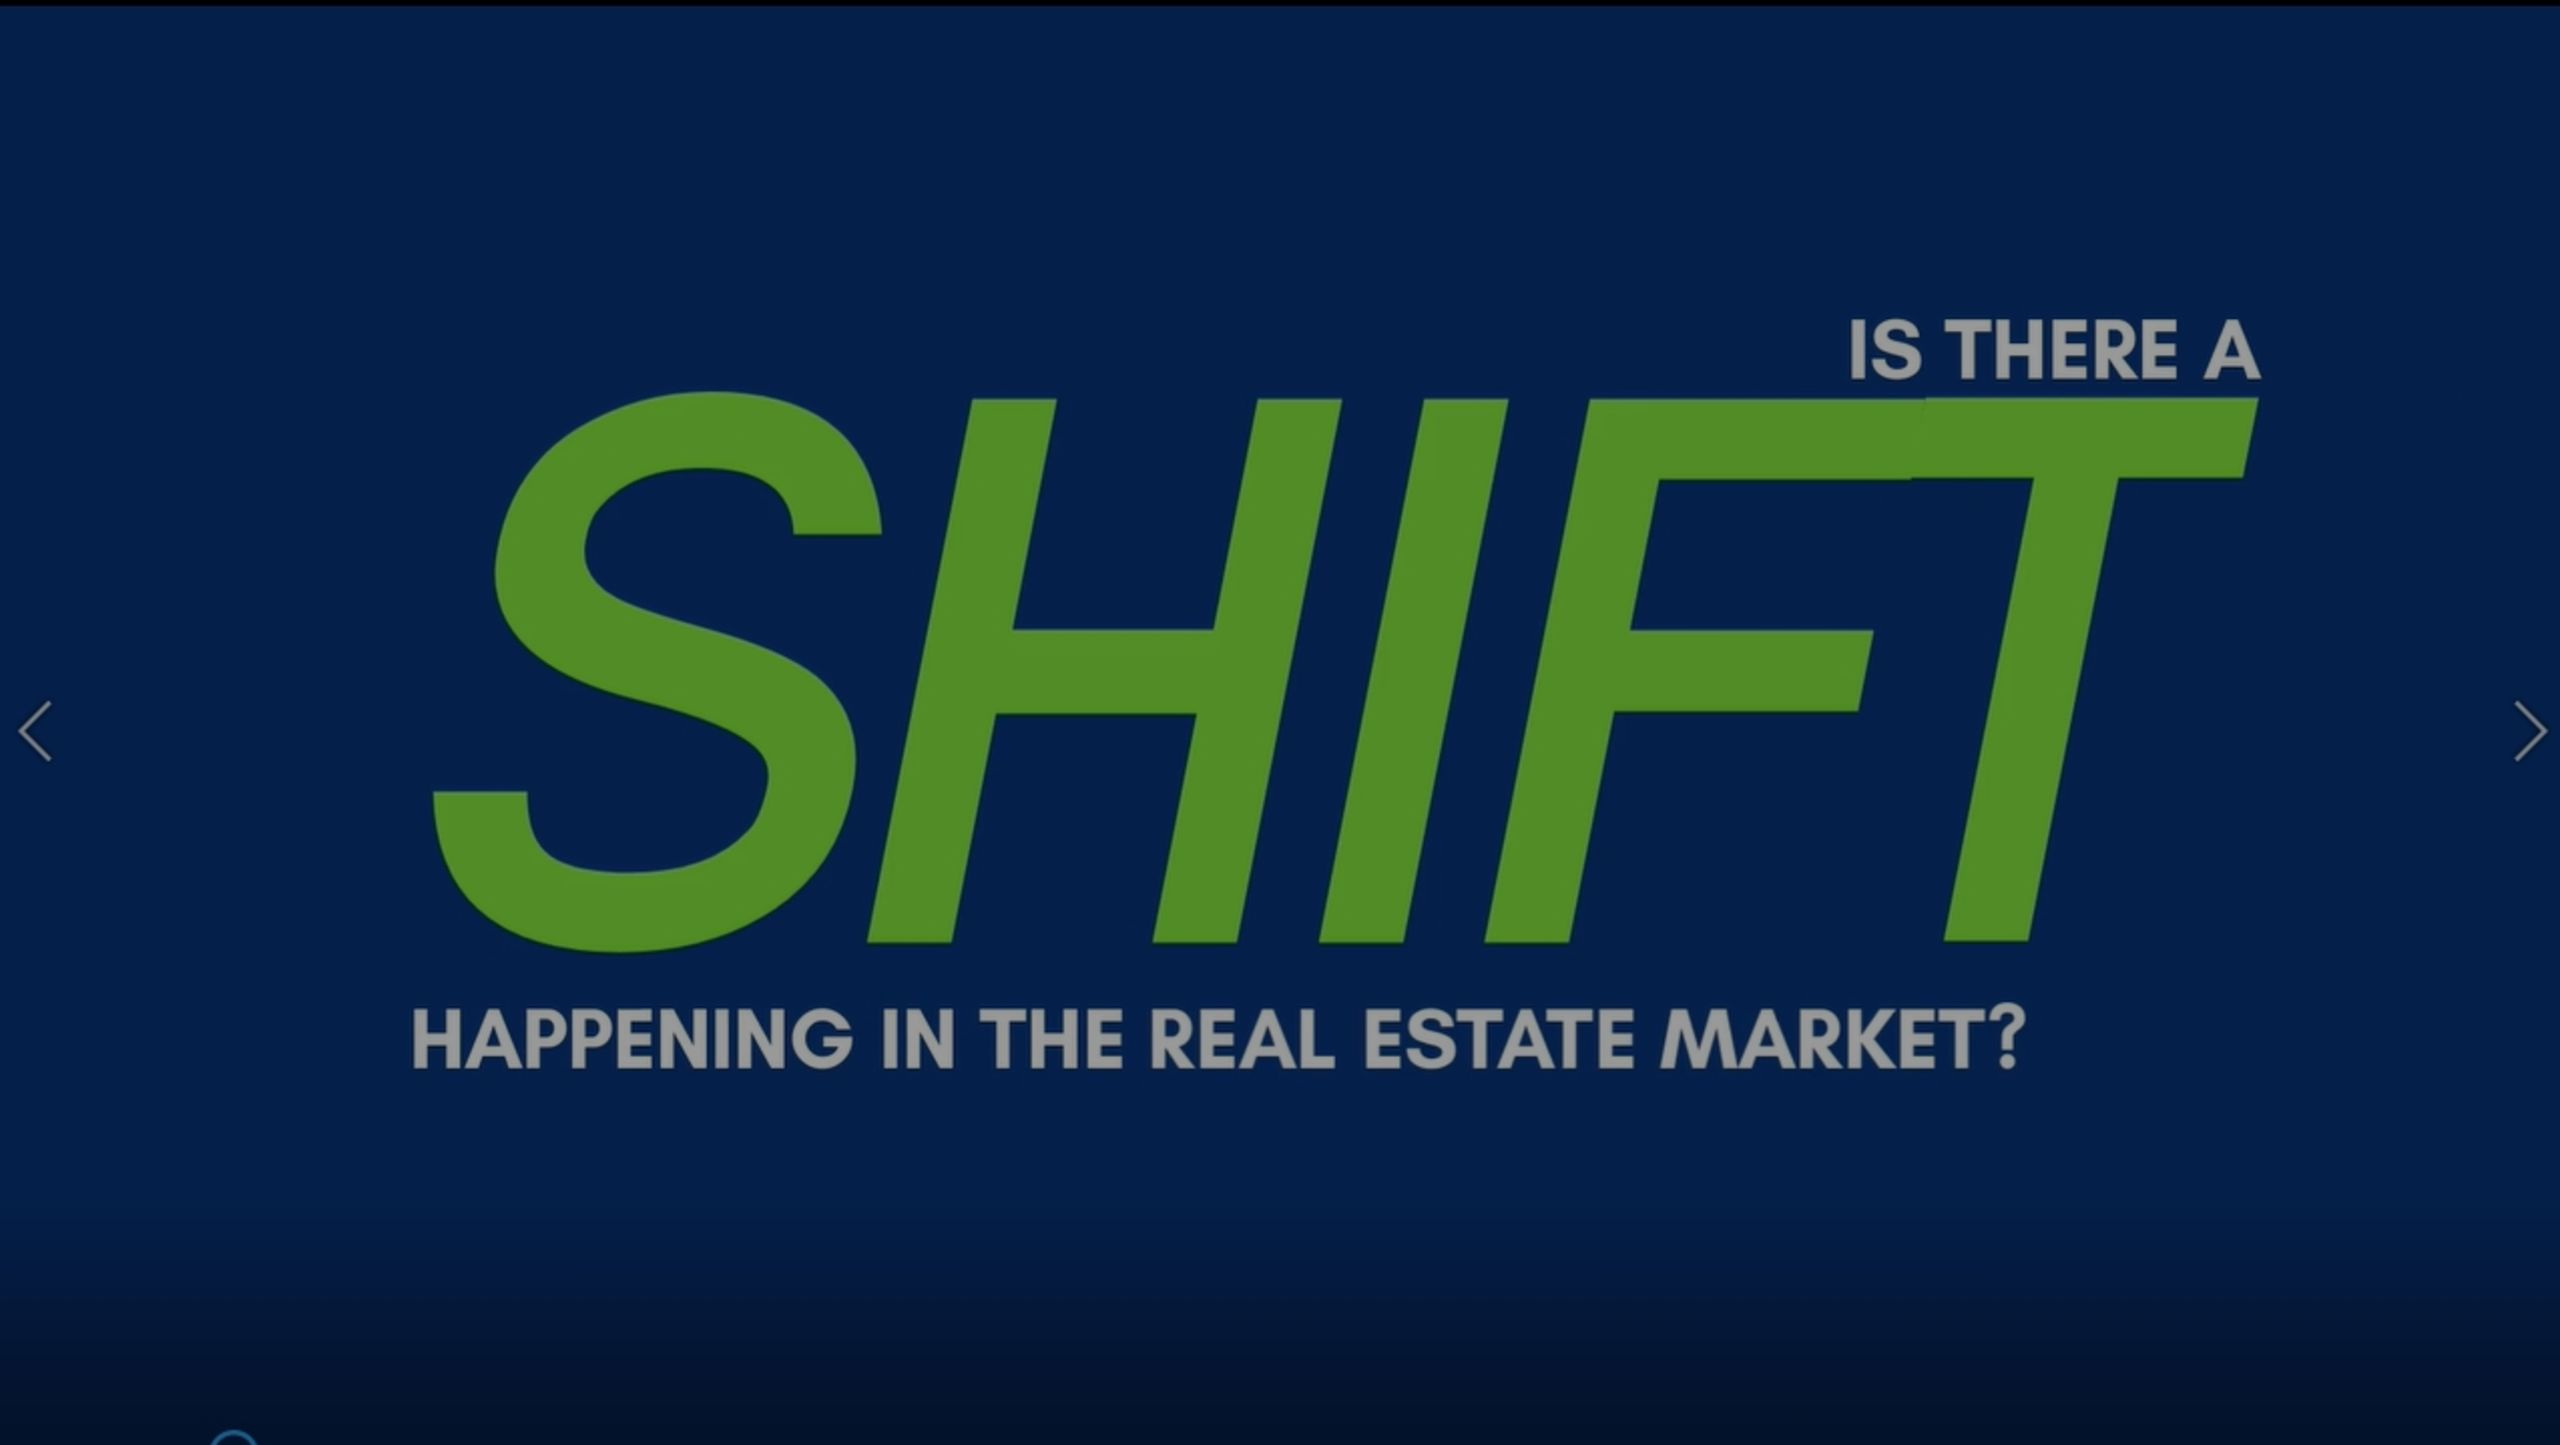 Is There a Shift Happening In The Real Estate Market?